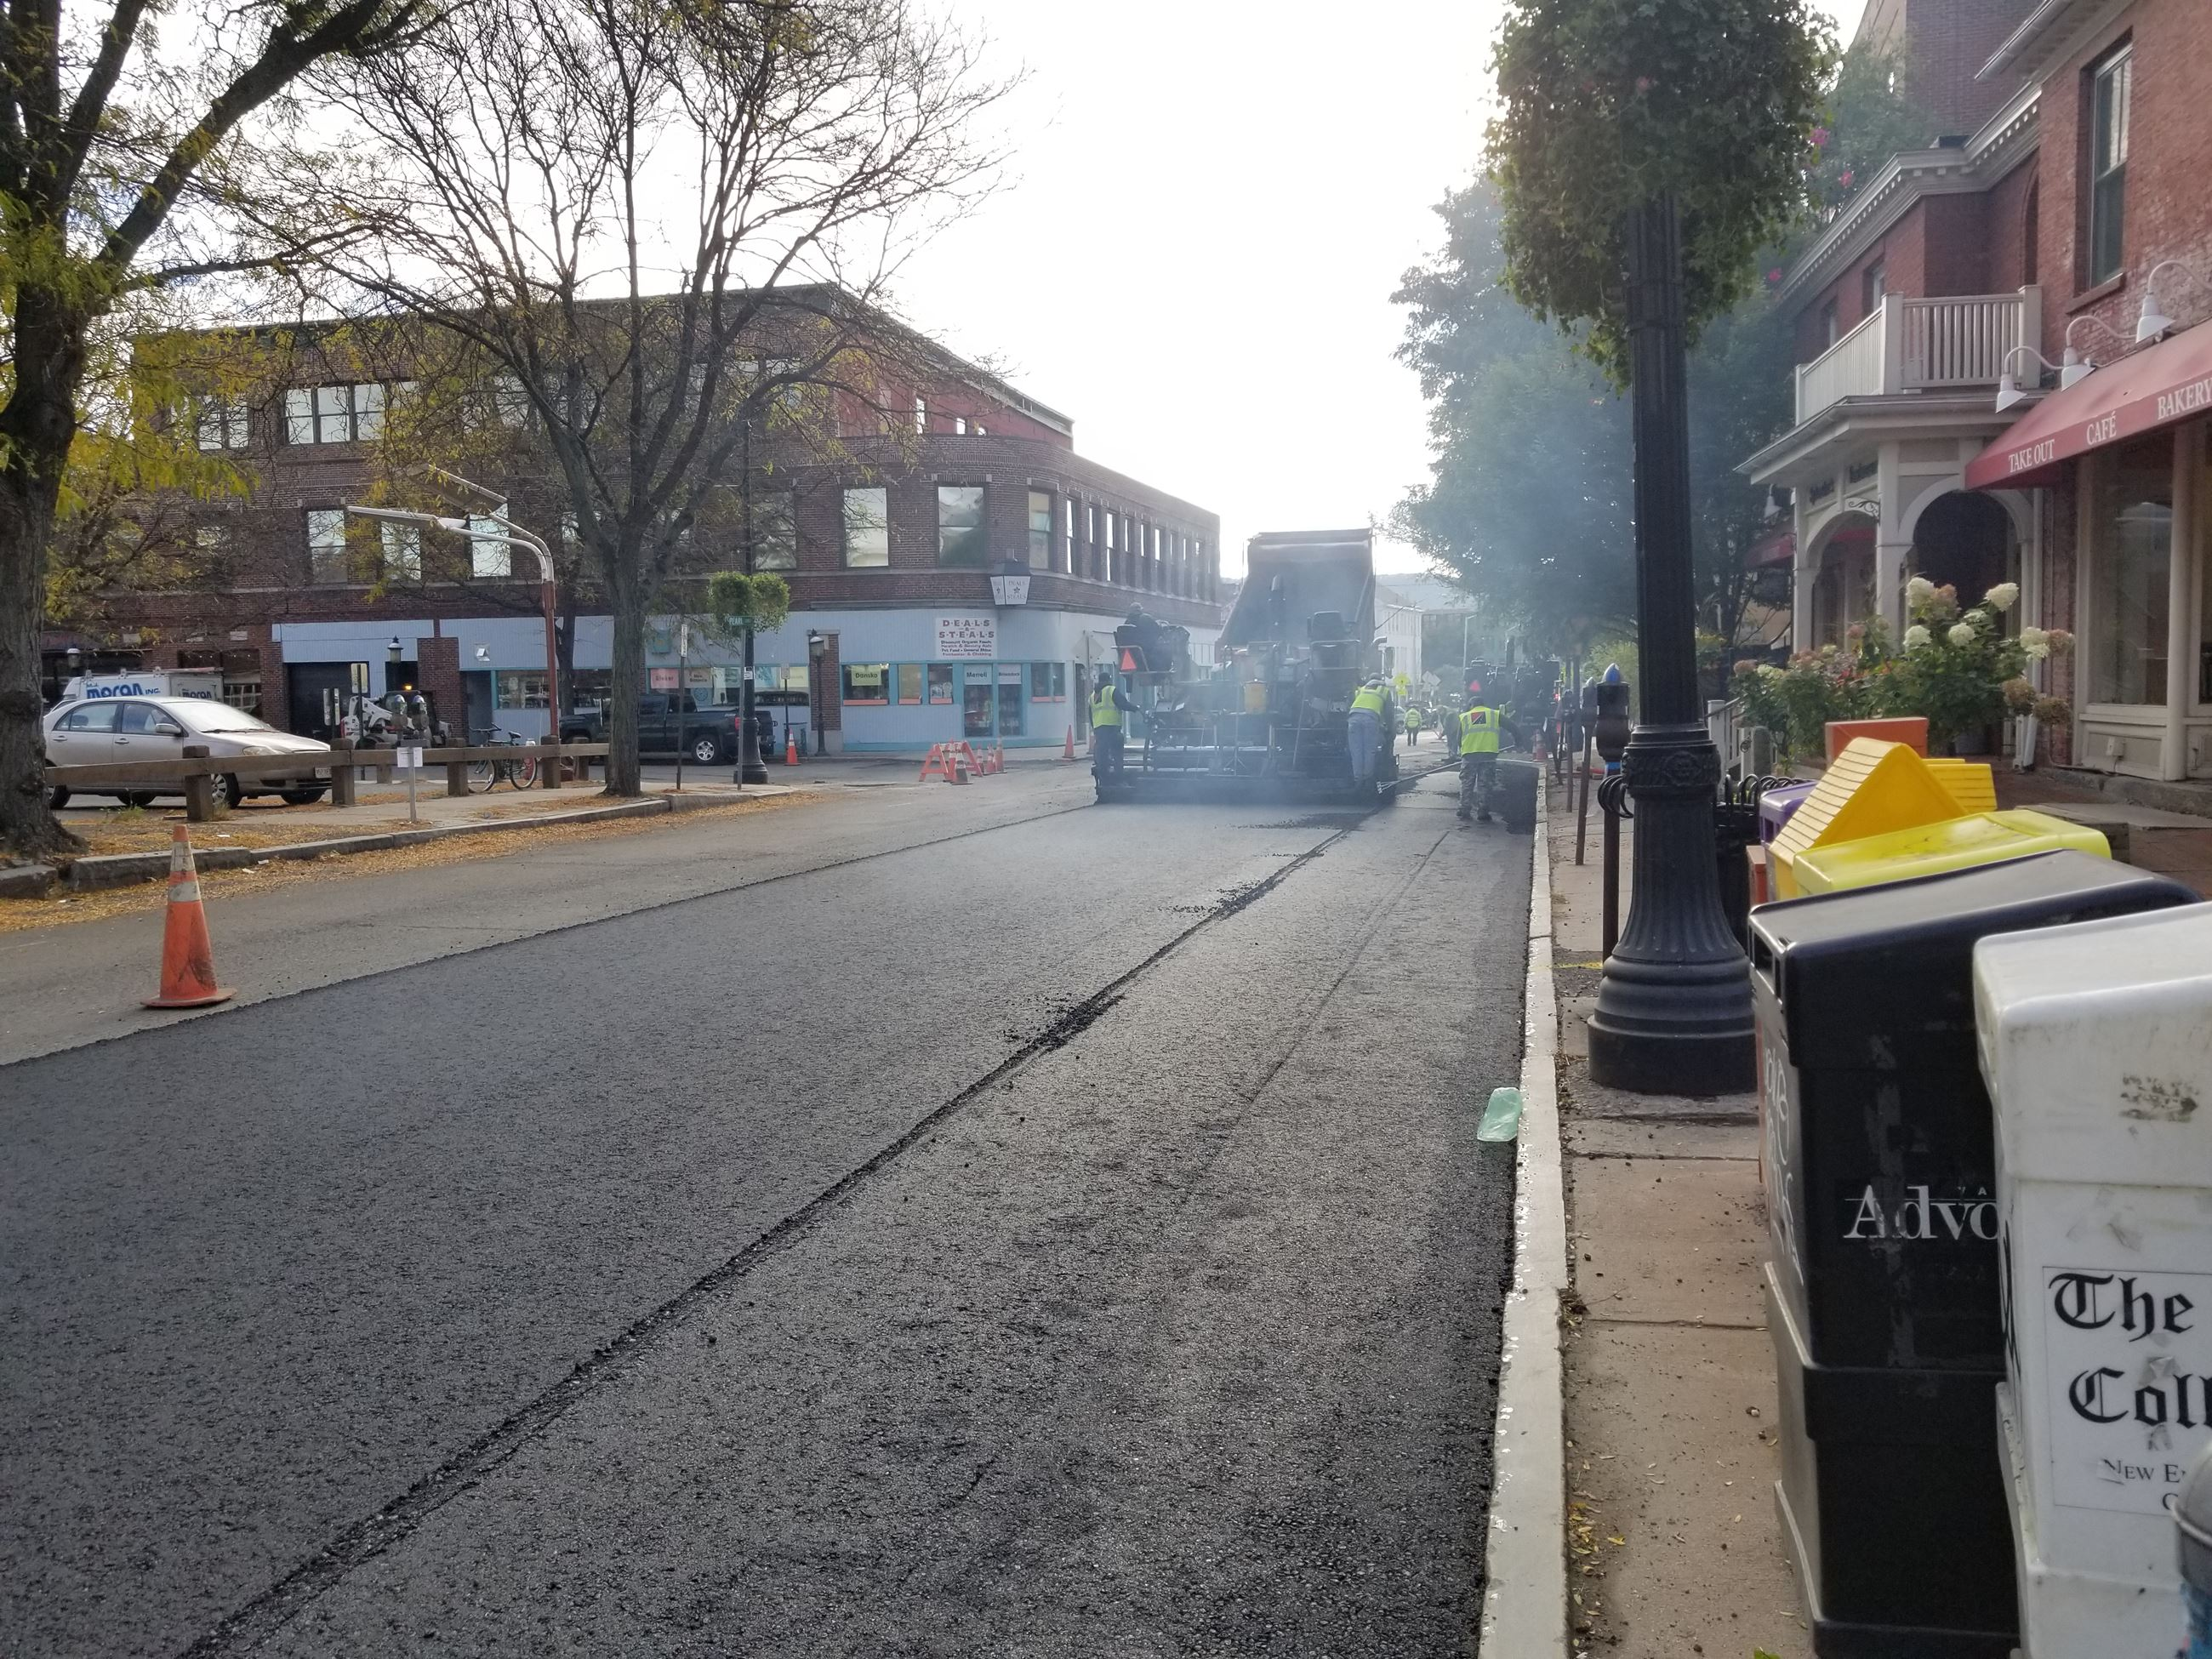 Image of Paving on Pleasant Street - Oct 2018